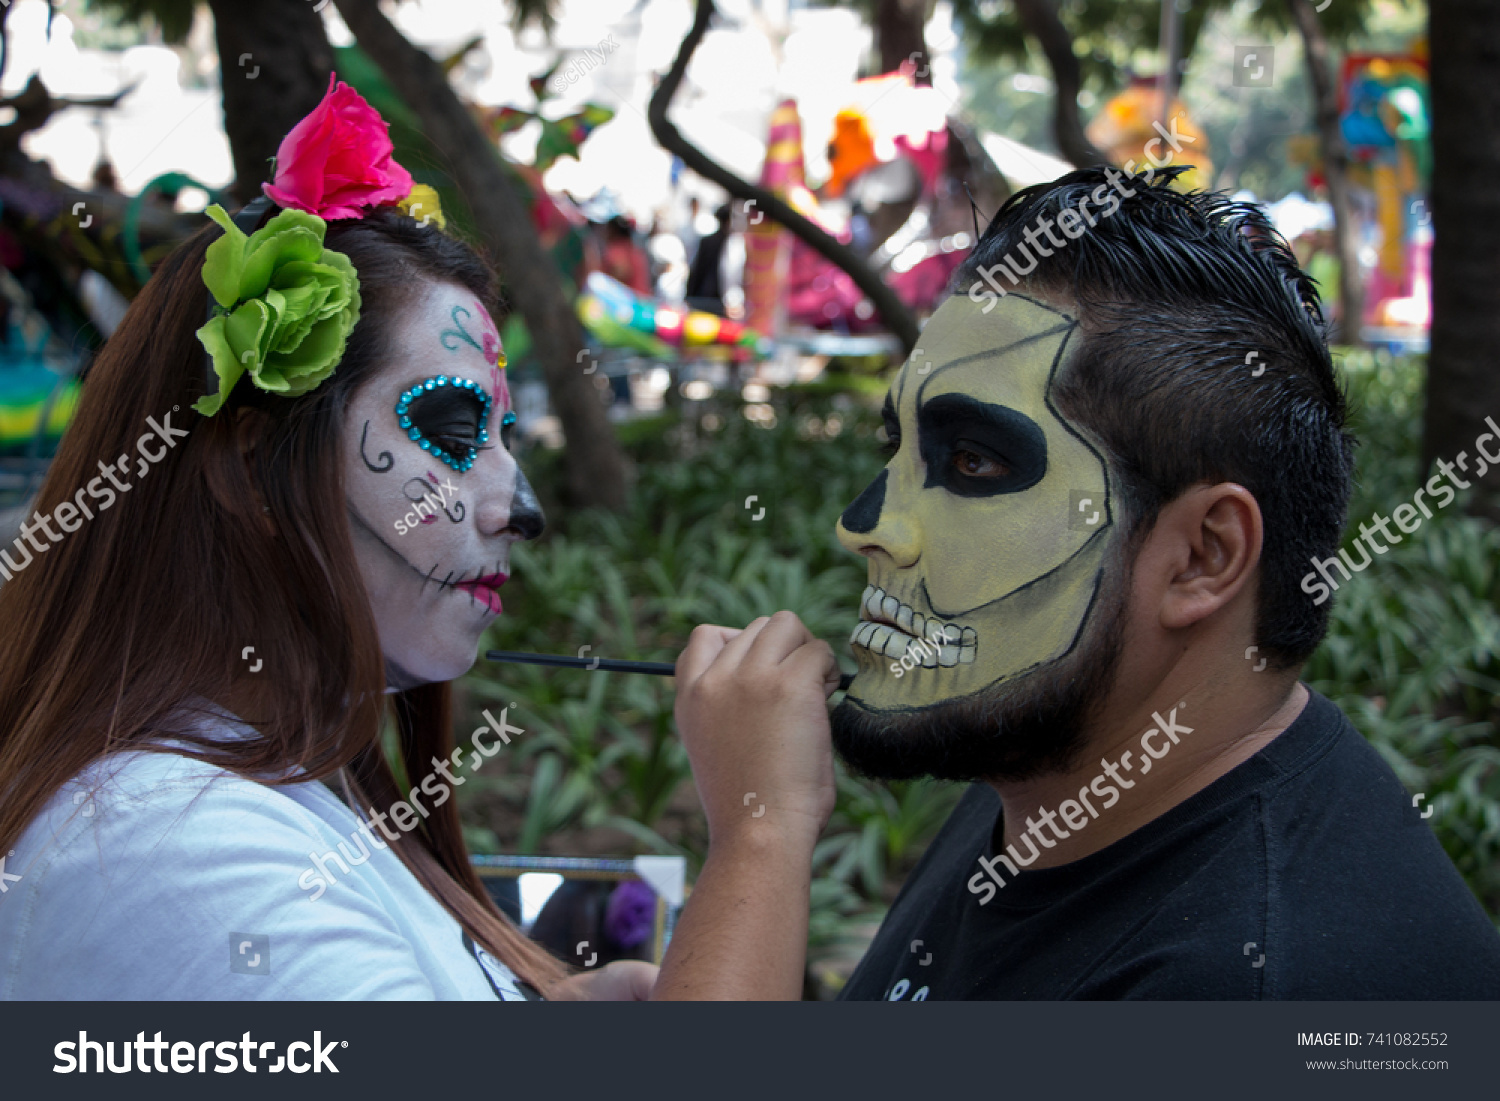 MEXICO CITY, MEXICO - OCTOBER 22, 2017: makeup artist face painting a man